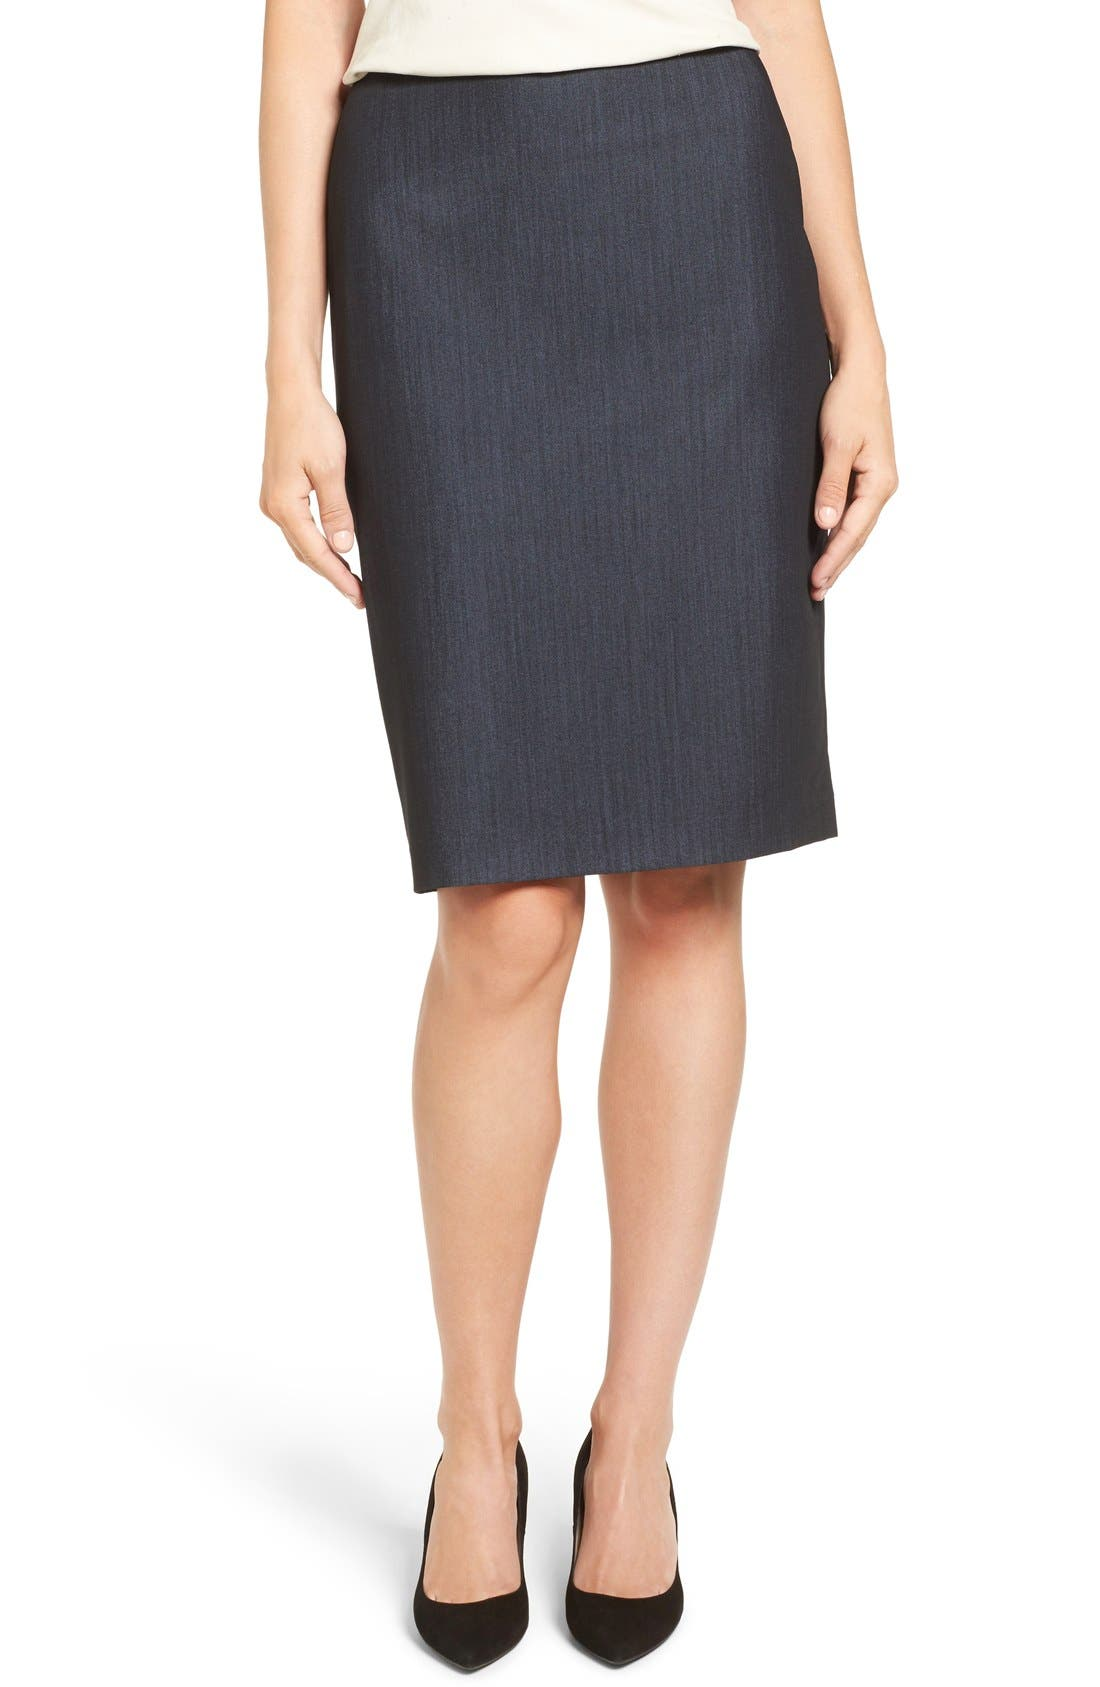 ANNE KLEIN,                             Stretch Woven Suit Skirt,                             Main thumbnail 1, color,                             INDIGO TWILL